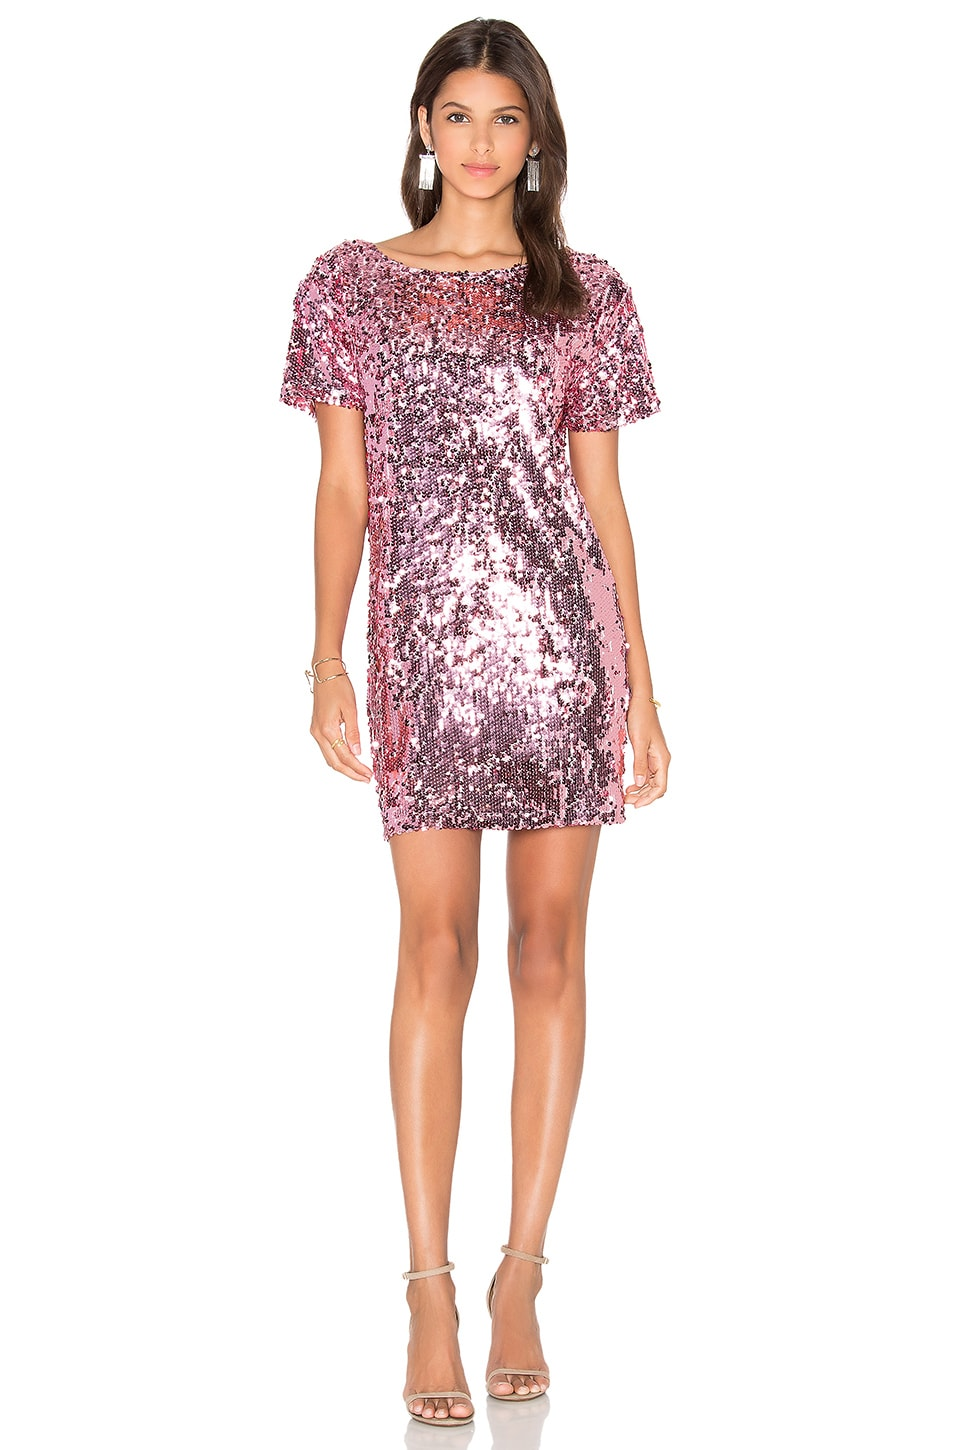 Motel Mausi Dress in Metallic Rose Sequin